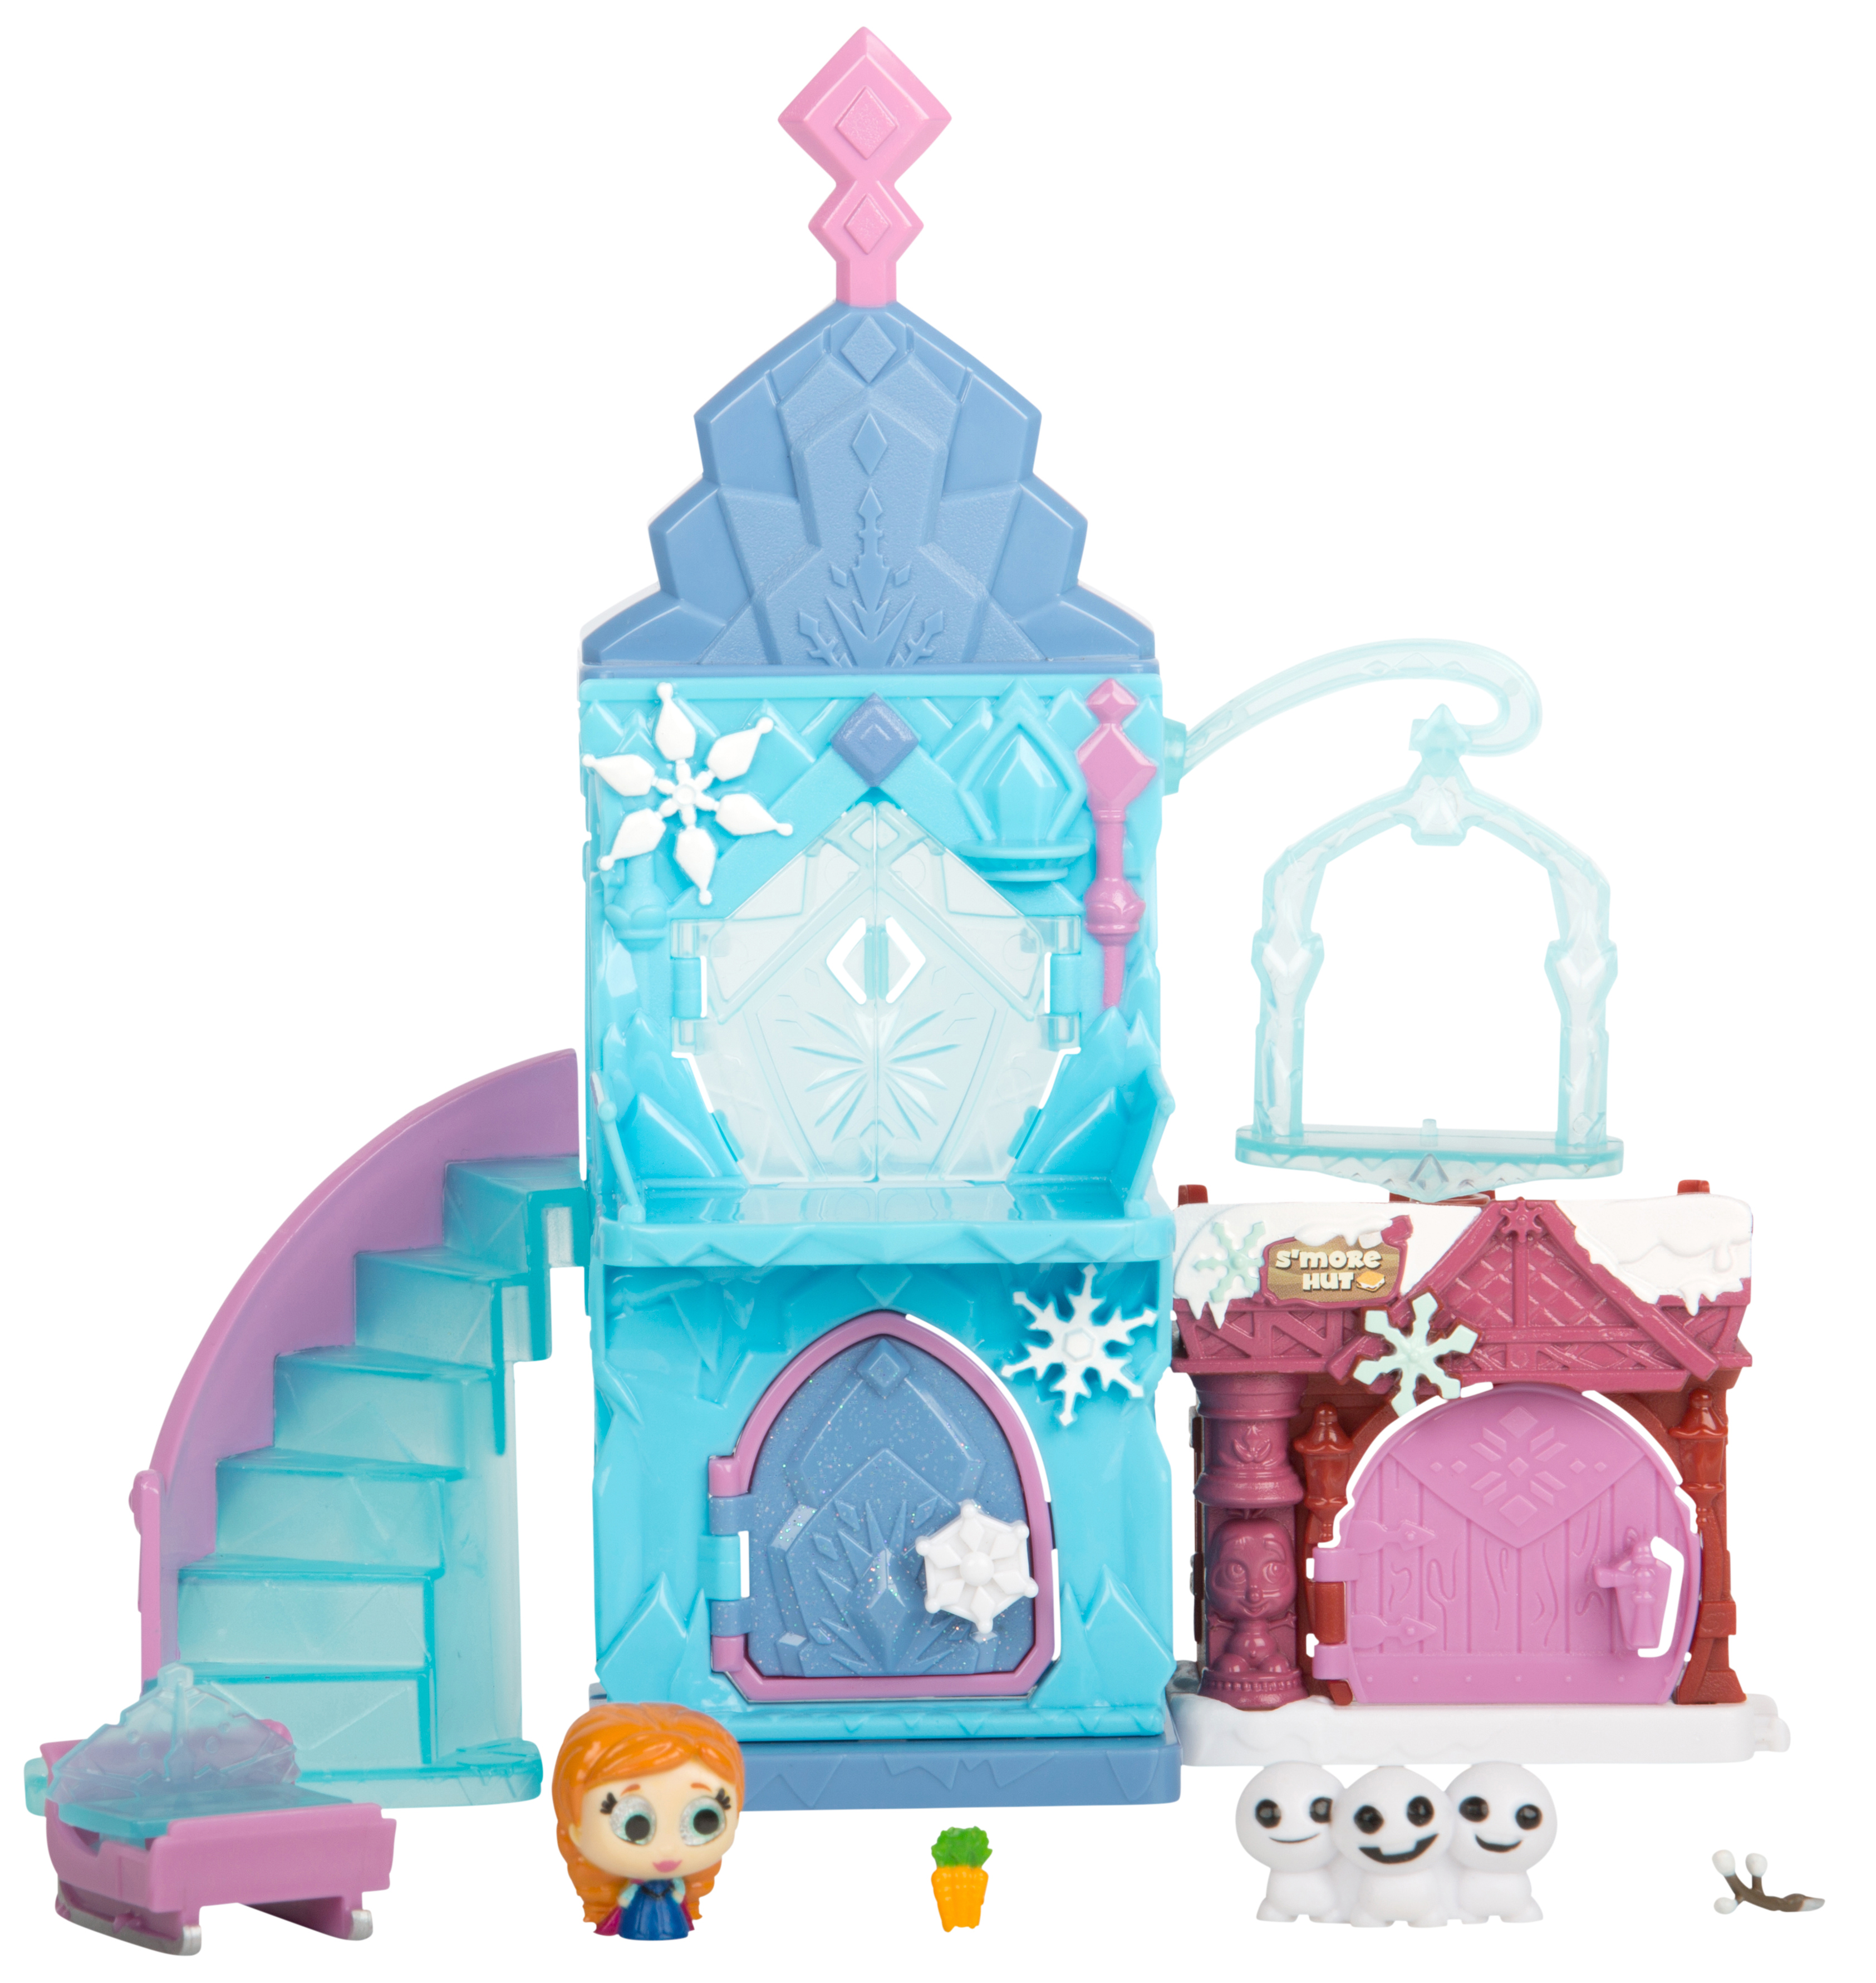 Disney Doorables Mini Collectible Figures Multi Stack Playset, Frozen